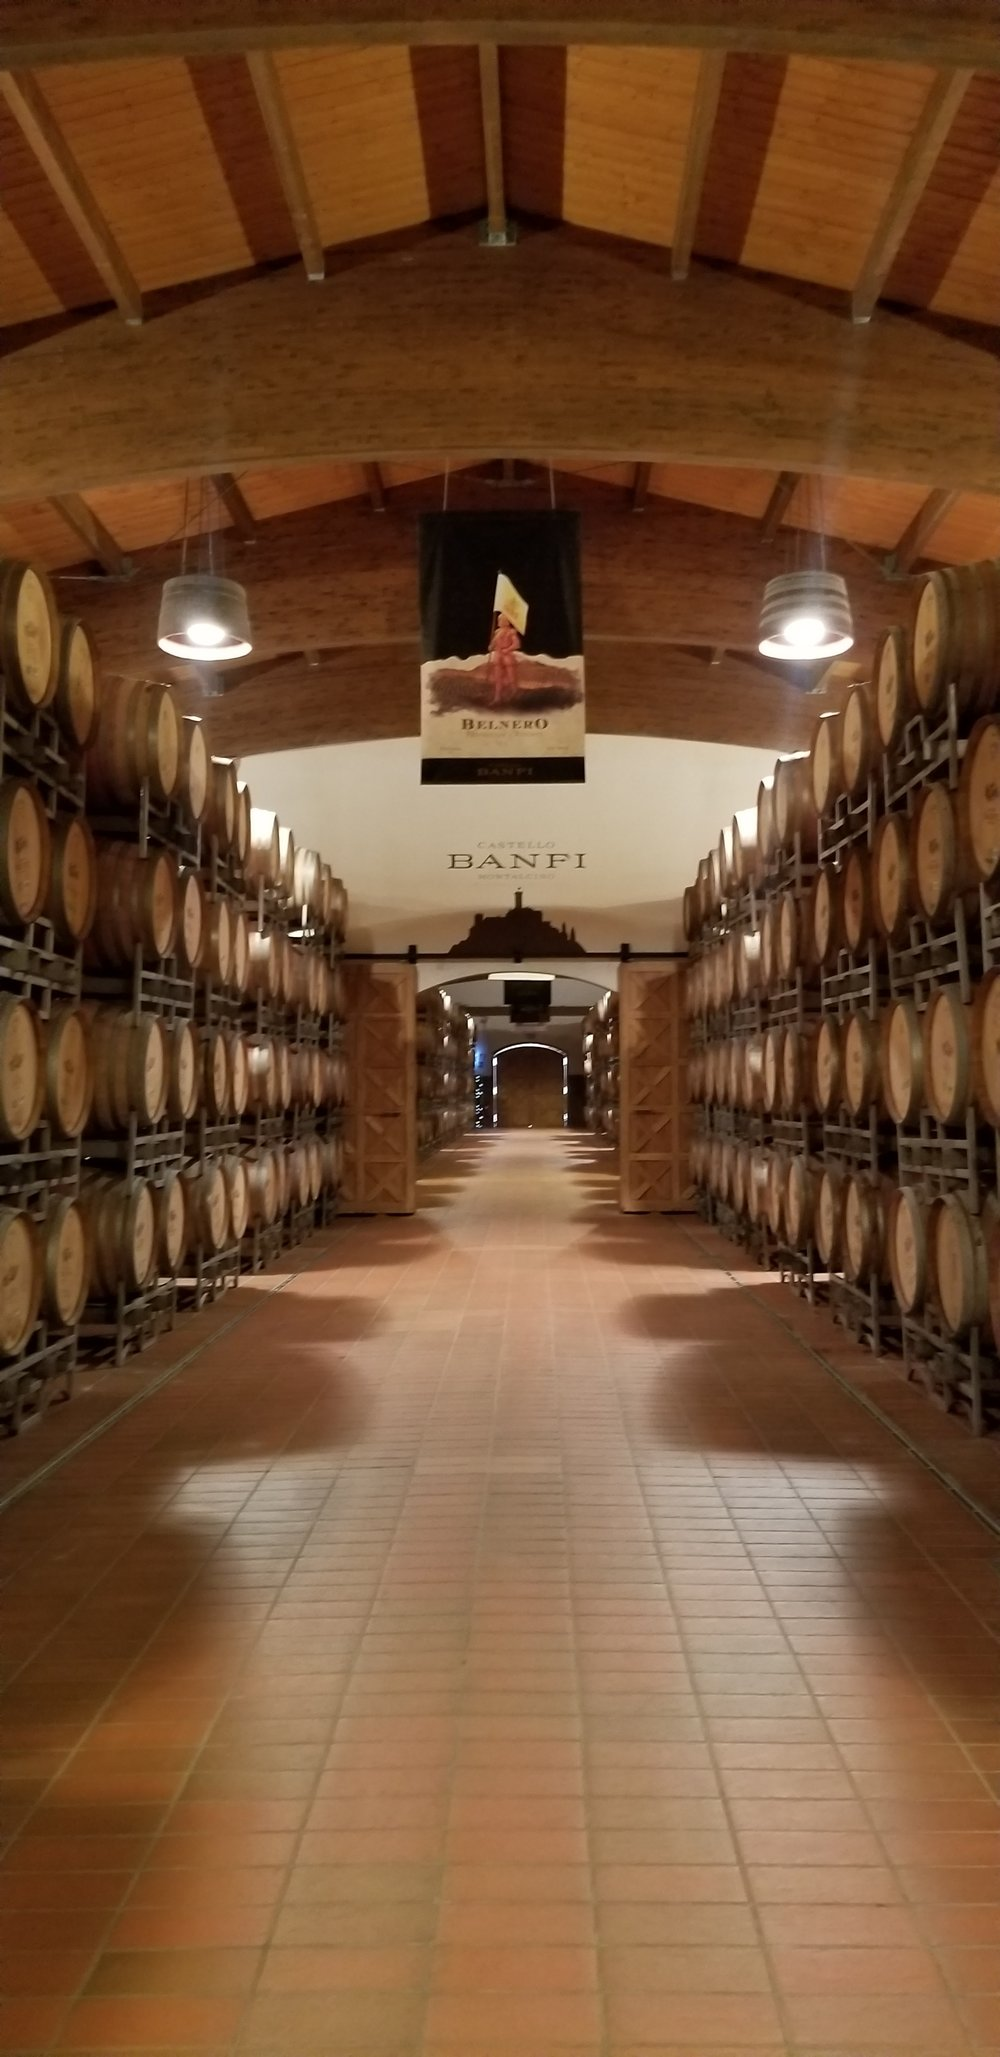 Banfi cellar, photo by Kelly Magyarics